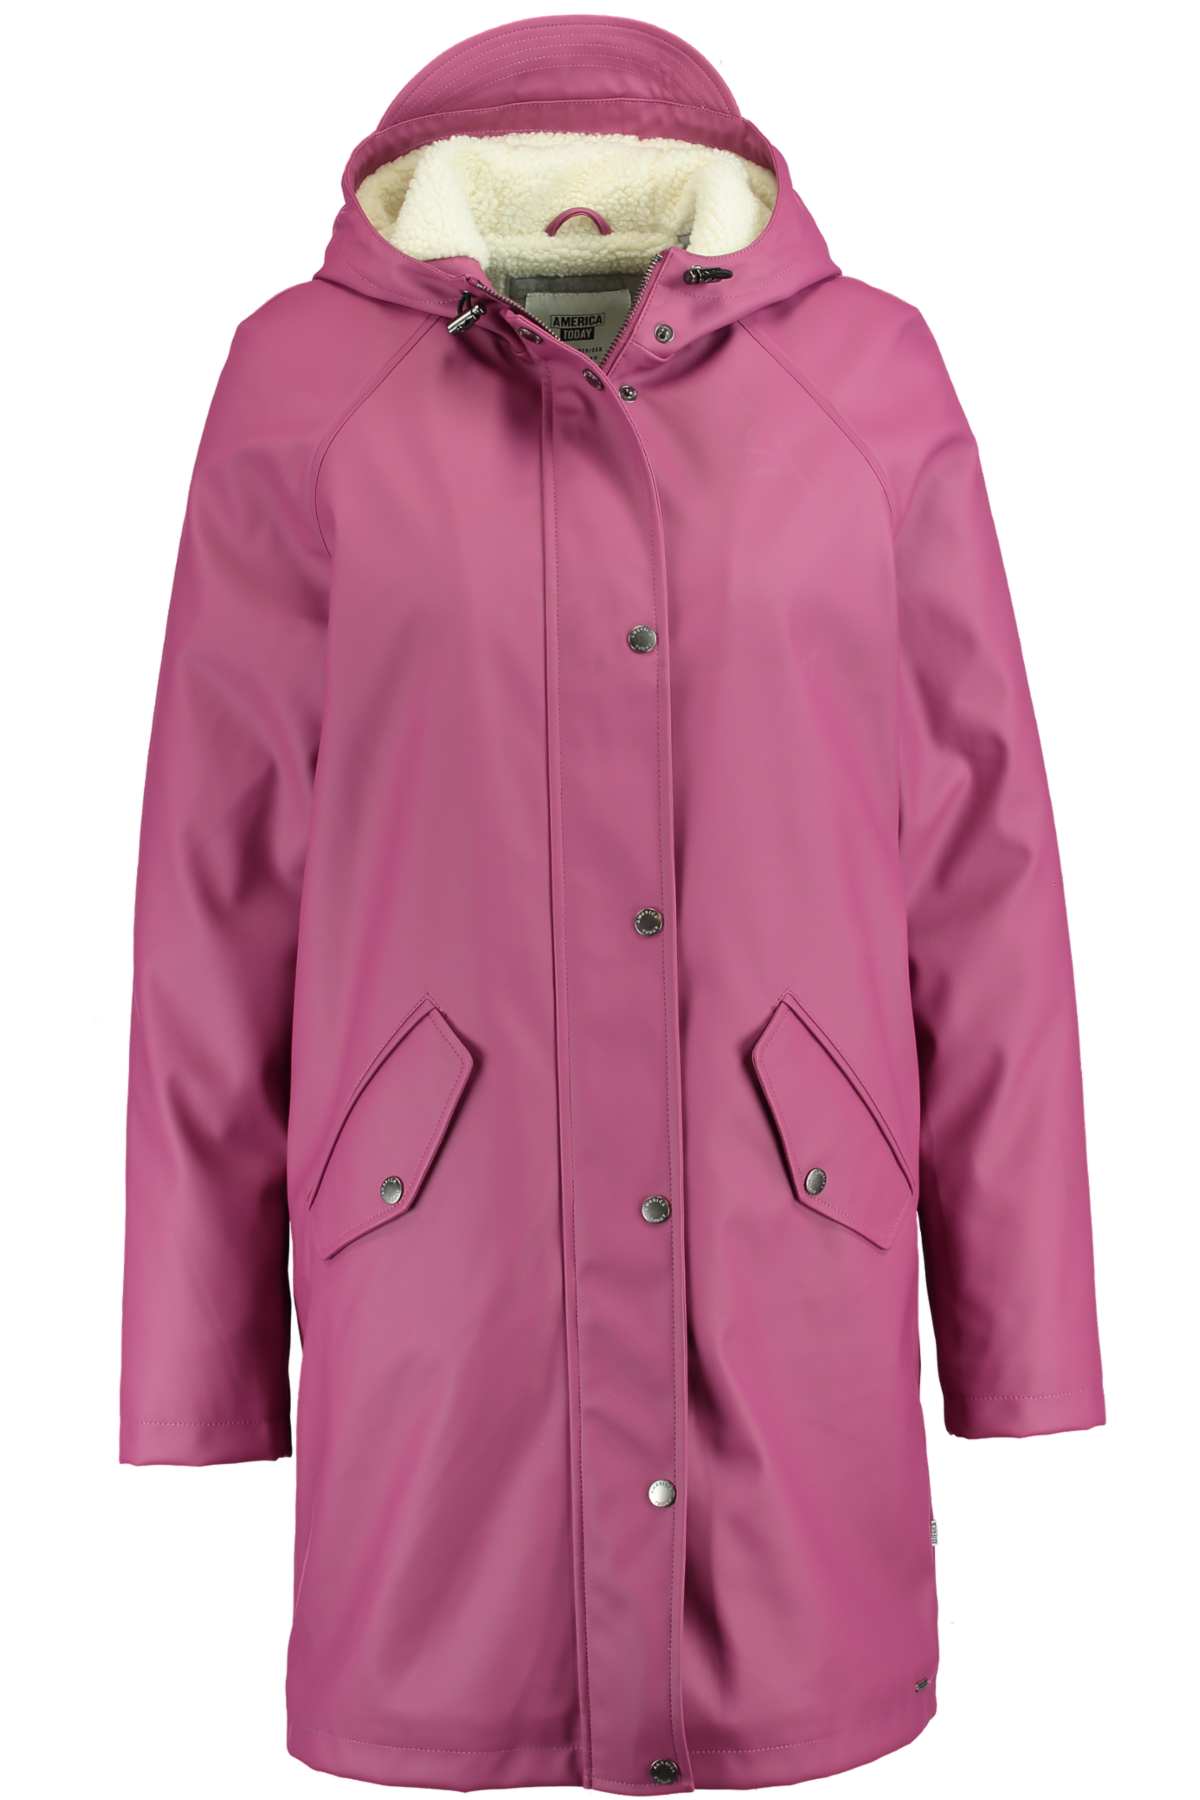 Rain jacket Janet teddy